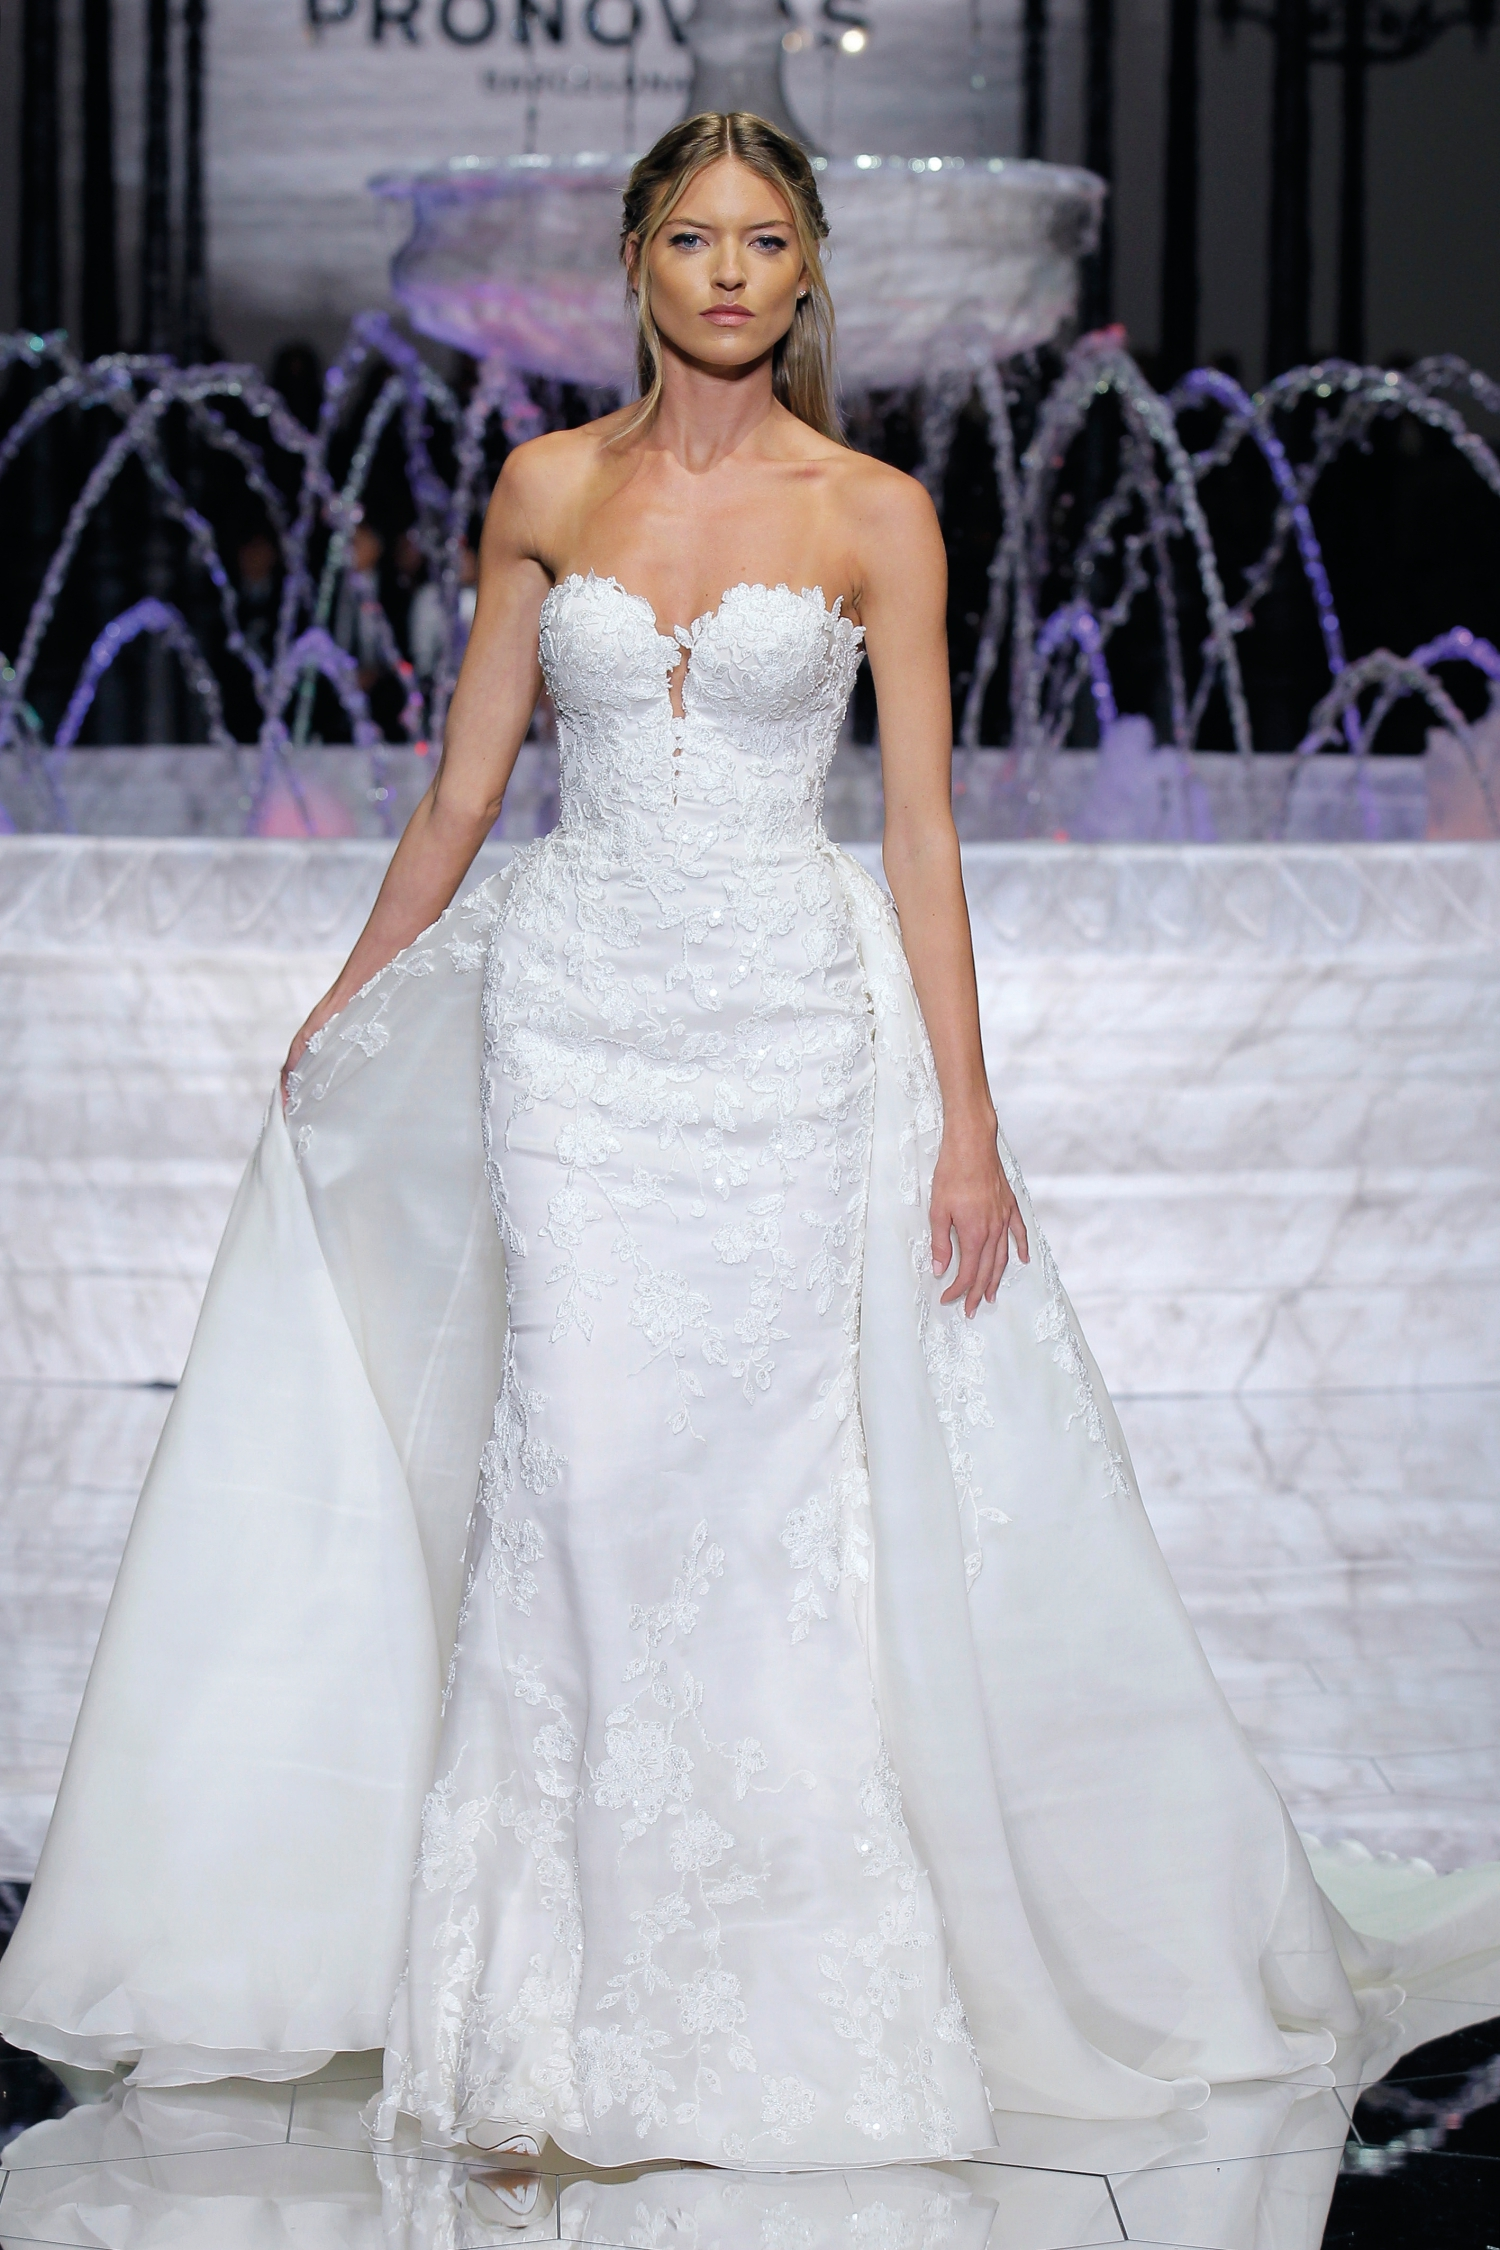 1-PRONOVIAS FASHION SHOW_Rodas